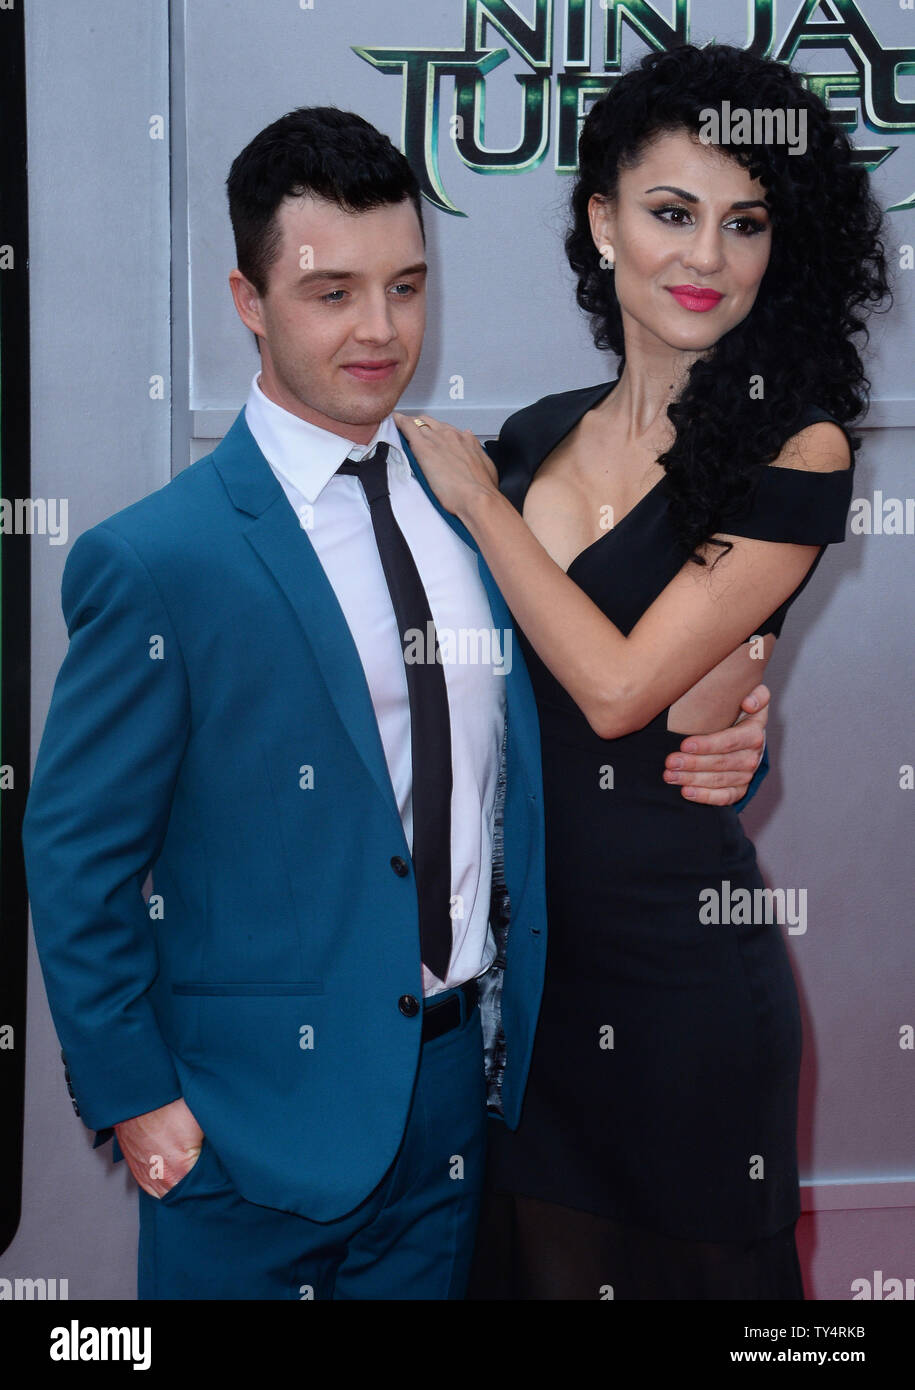 Cast Member Noel Fisher And Actress Layla Alizada Attend The Premiere Of The Motion Picture Sci Fi Fantasy Teenage Mutant Ninja Turtles At The Regency Village Theatre In The Westwood Section Of Los